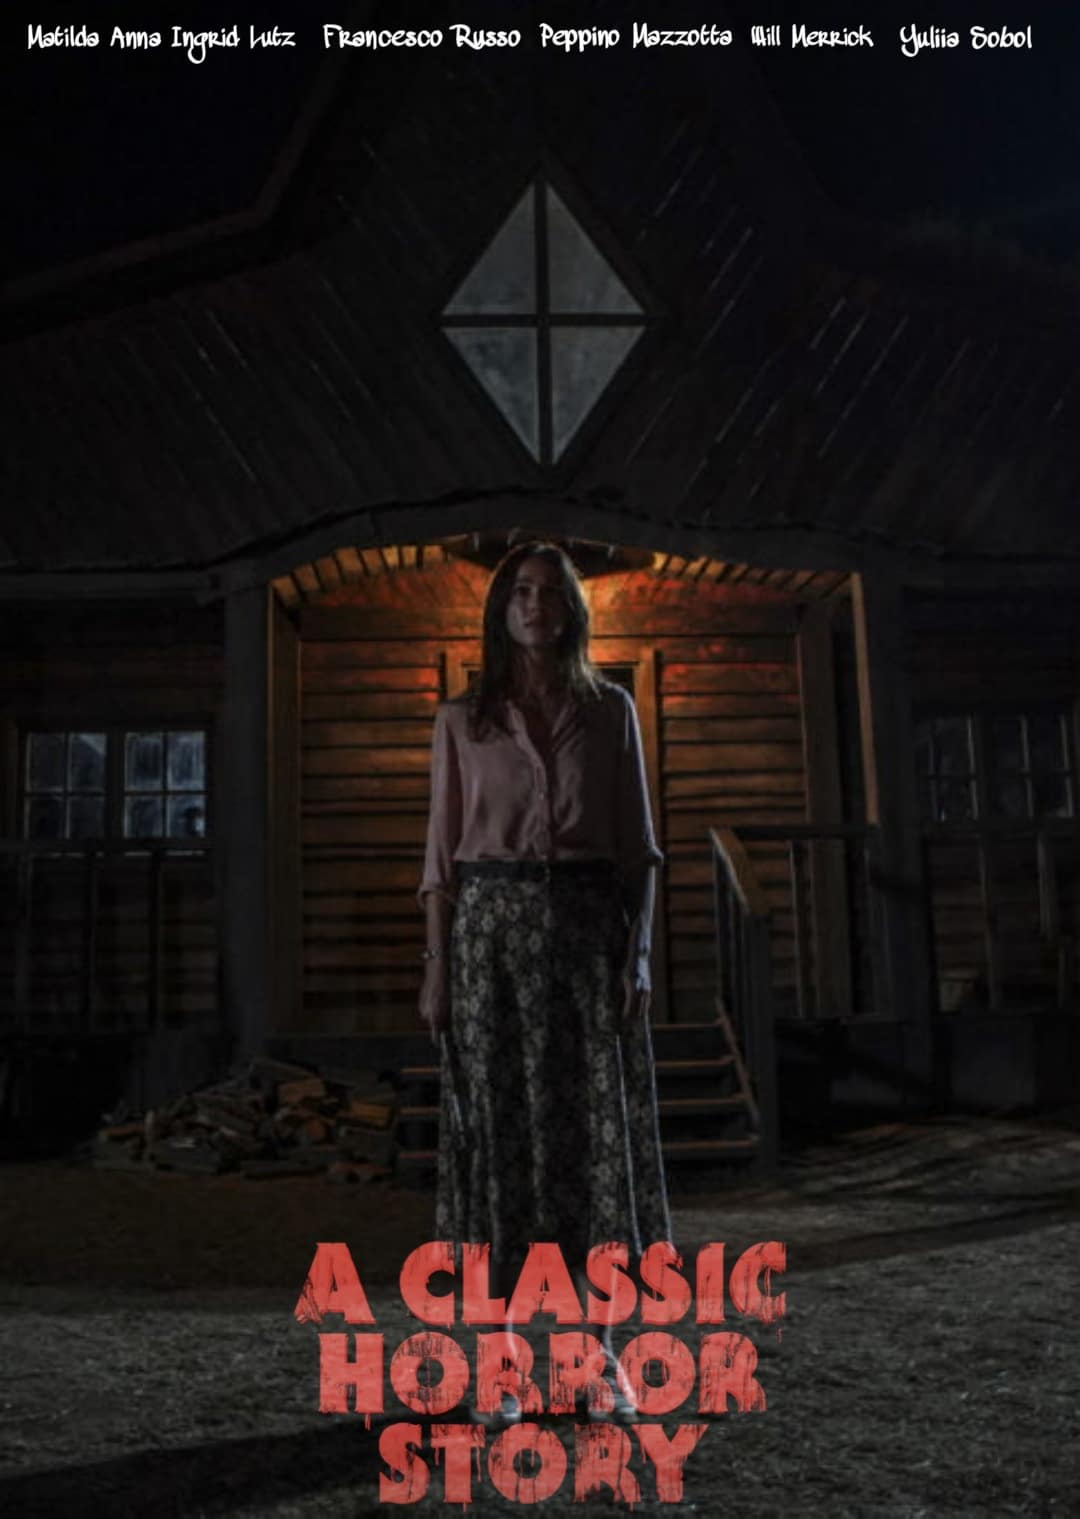 A Classic Horror Story – Teaser Poster